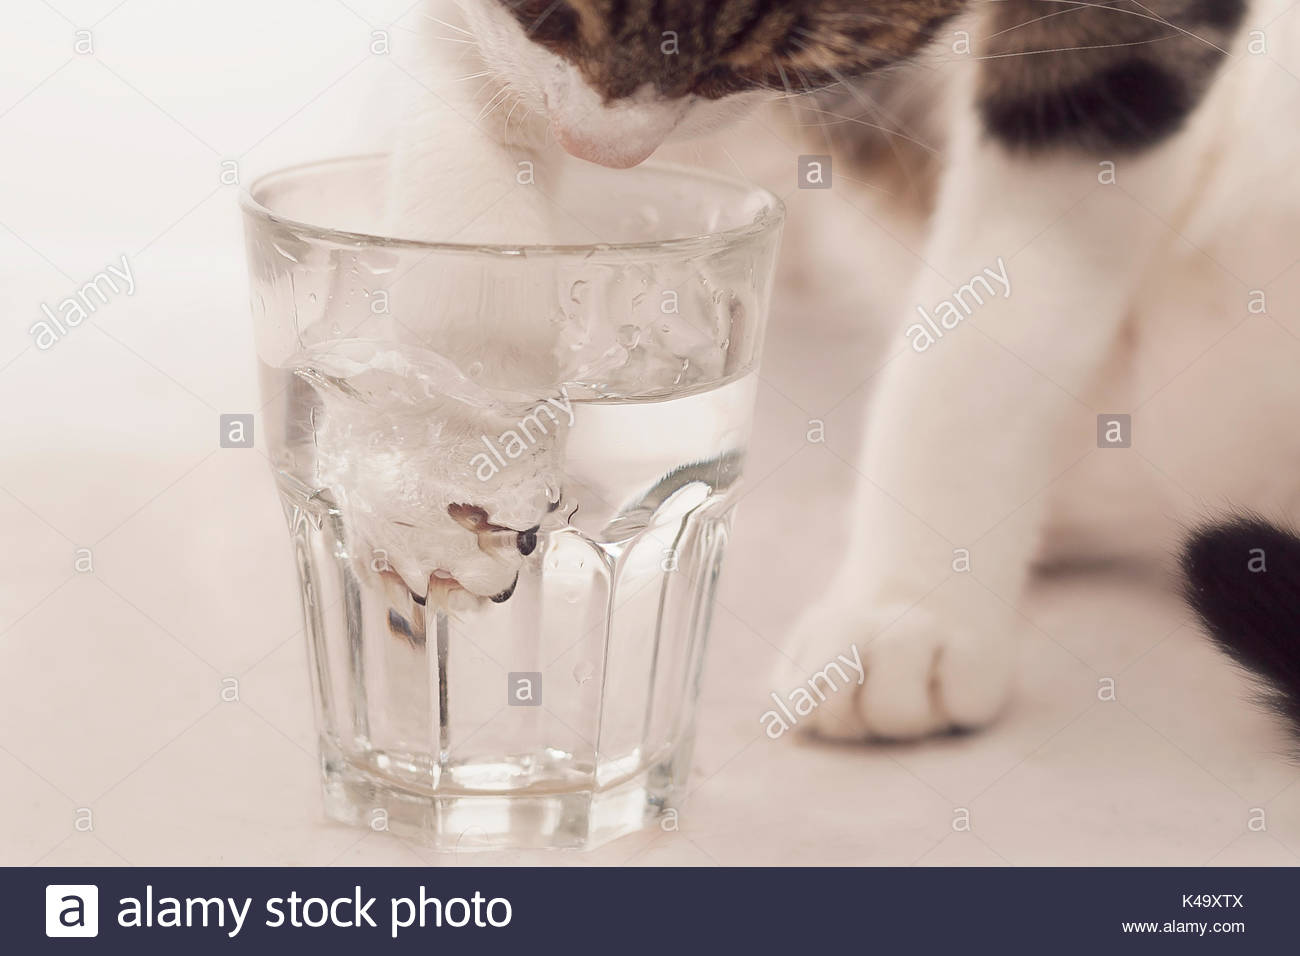 Curious cat uses paw to drink water from a glass - Stock Image